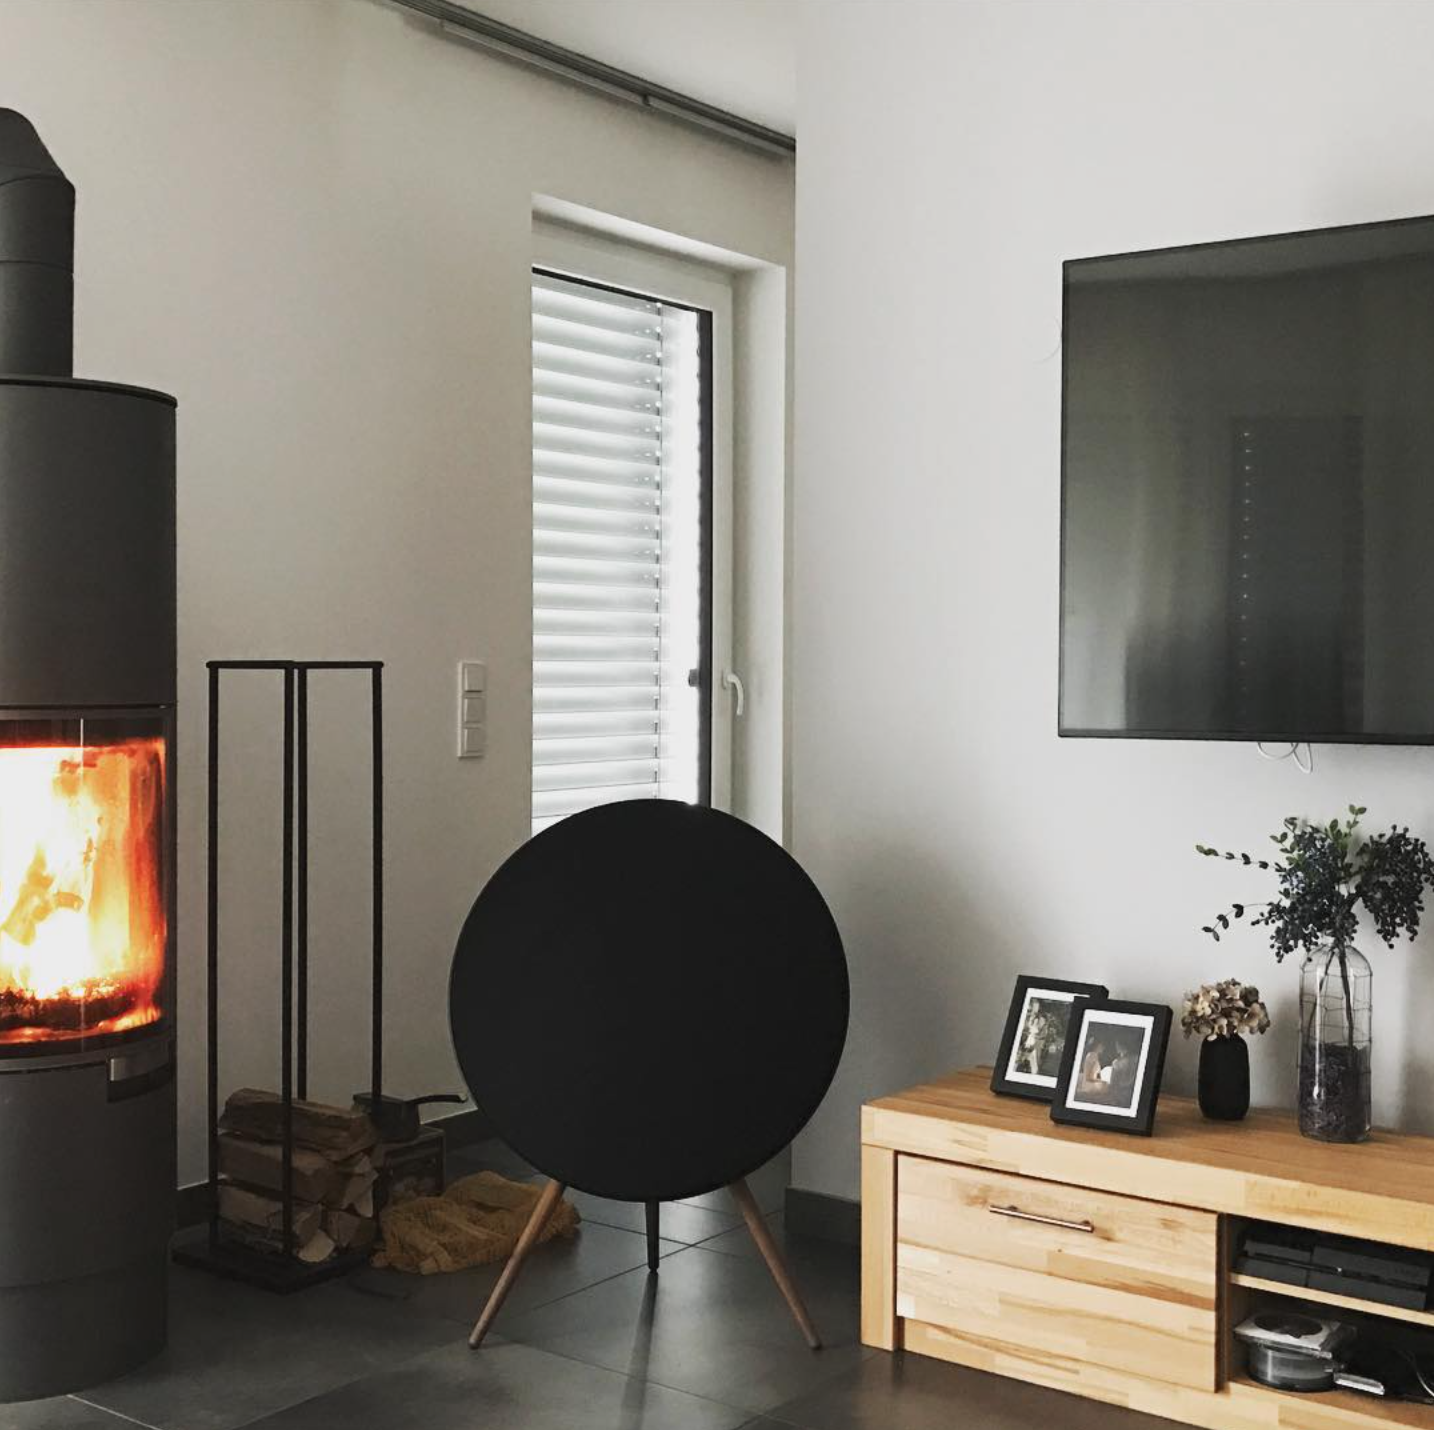 Cozy b o living room shared by soung yung syk1980 on instagram your b o home for Best bluetooth speaker for living room